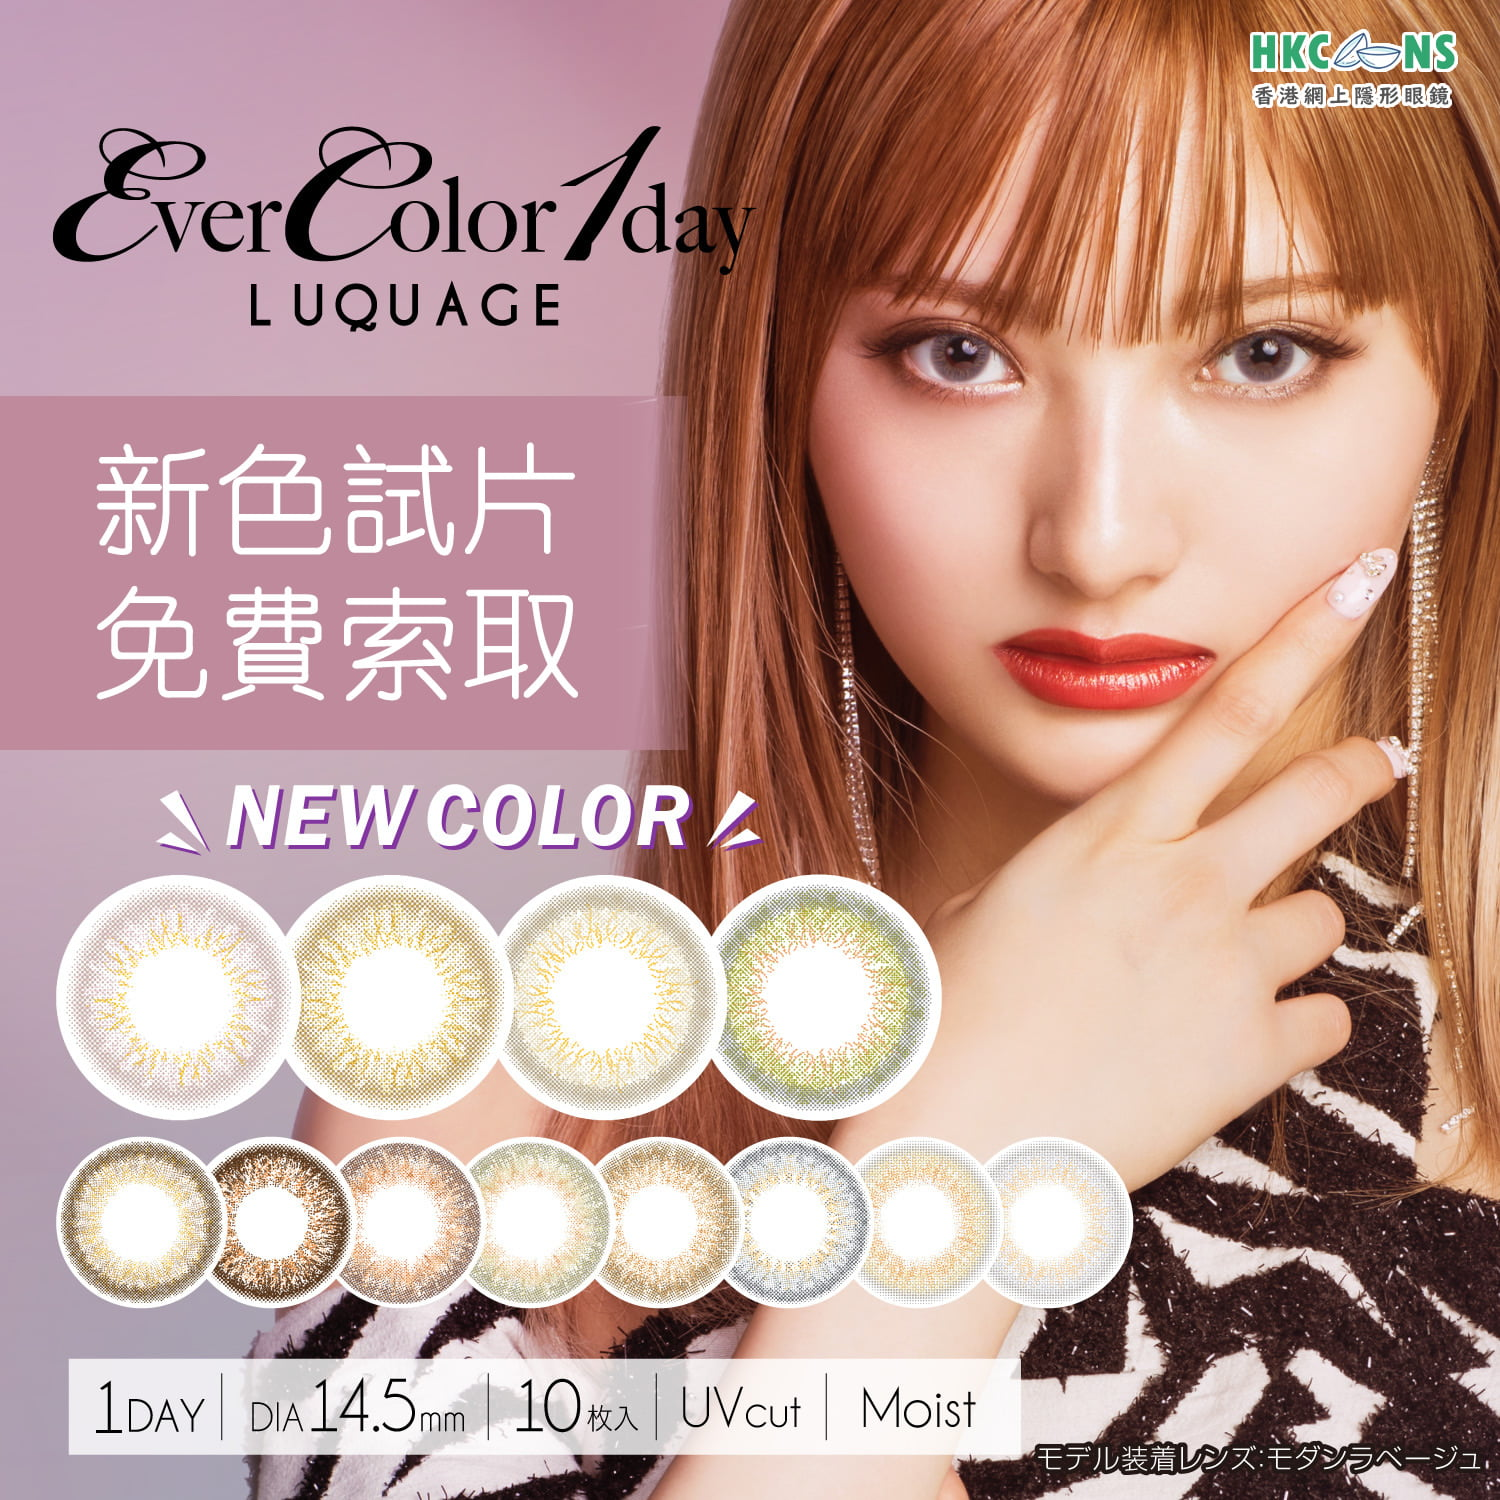 hkcons-Evercolor-1Day-Luquage-sample